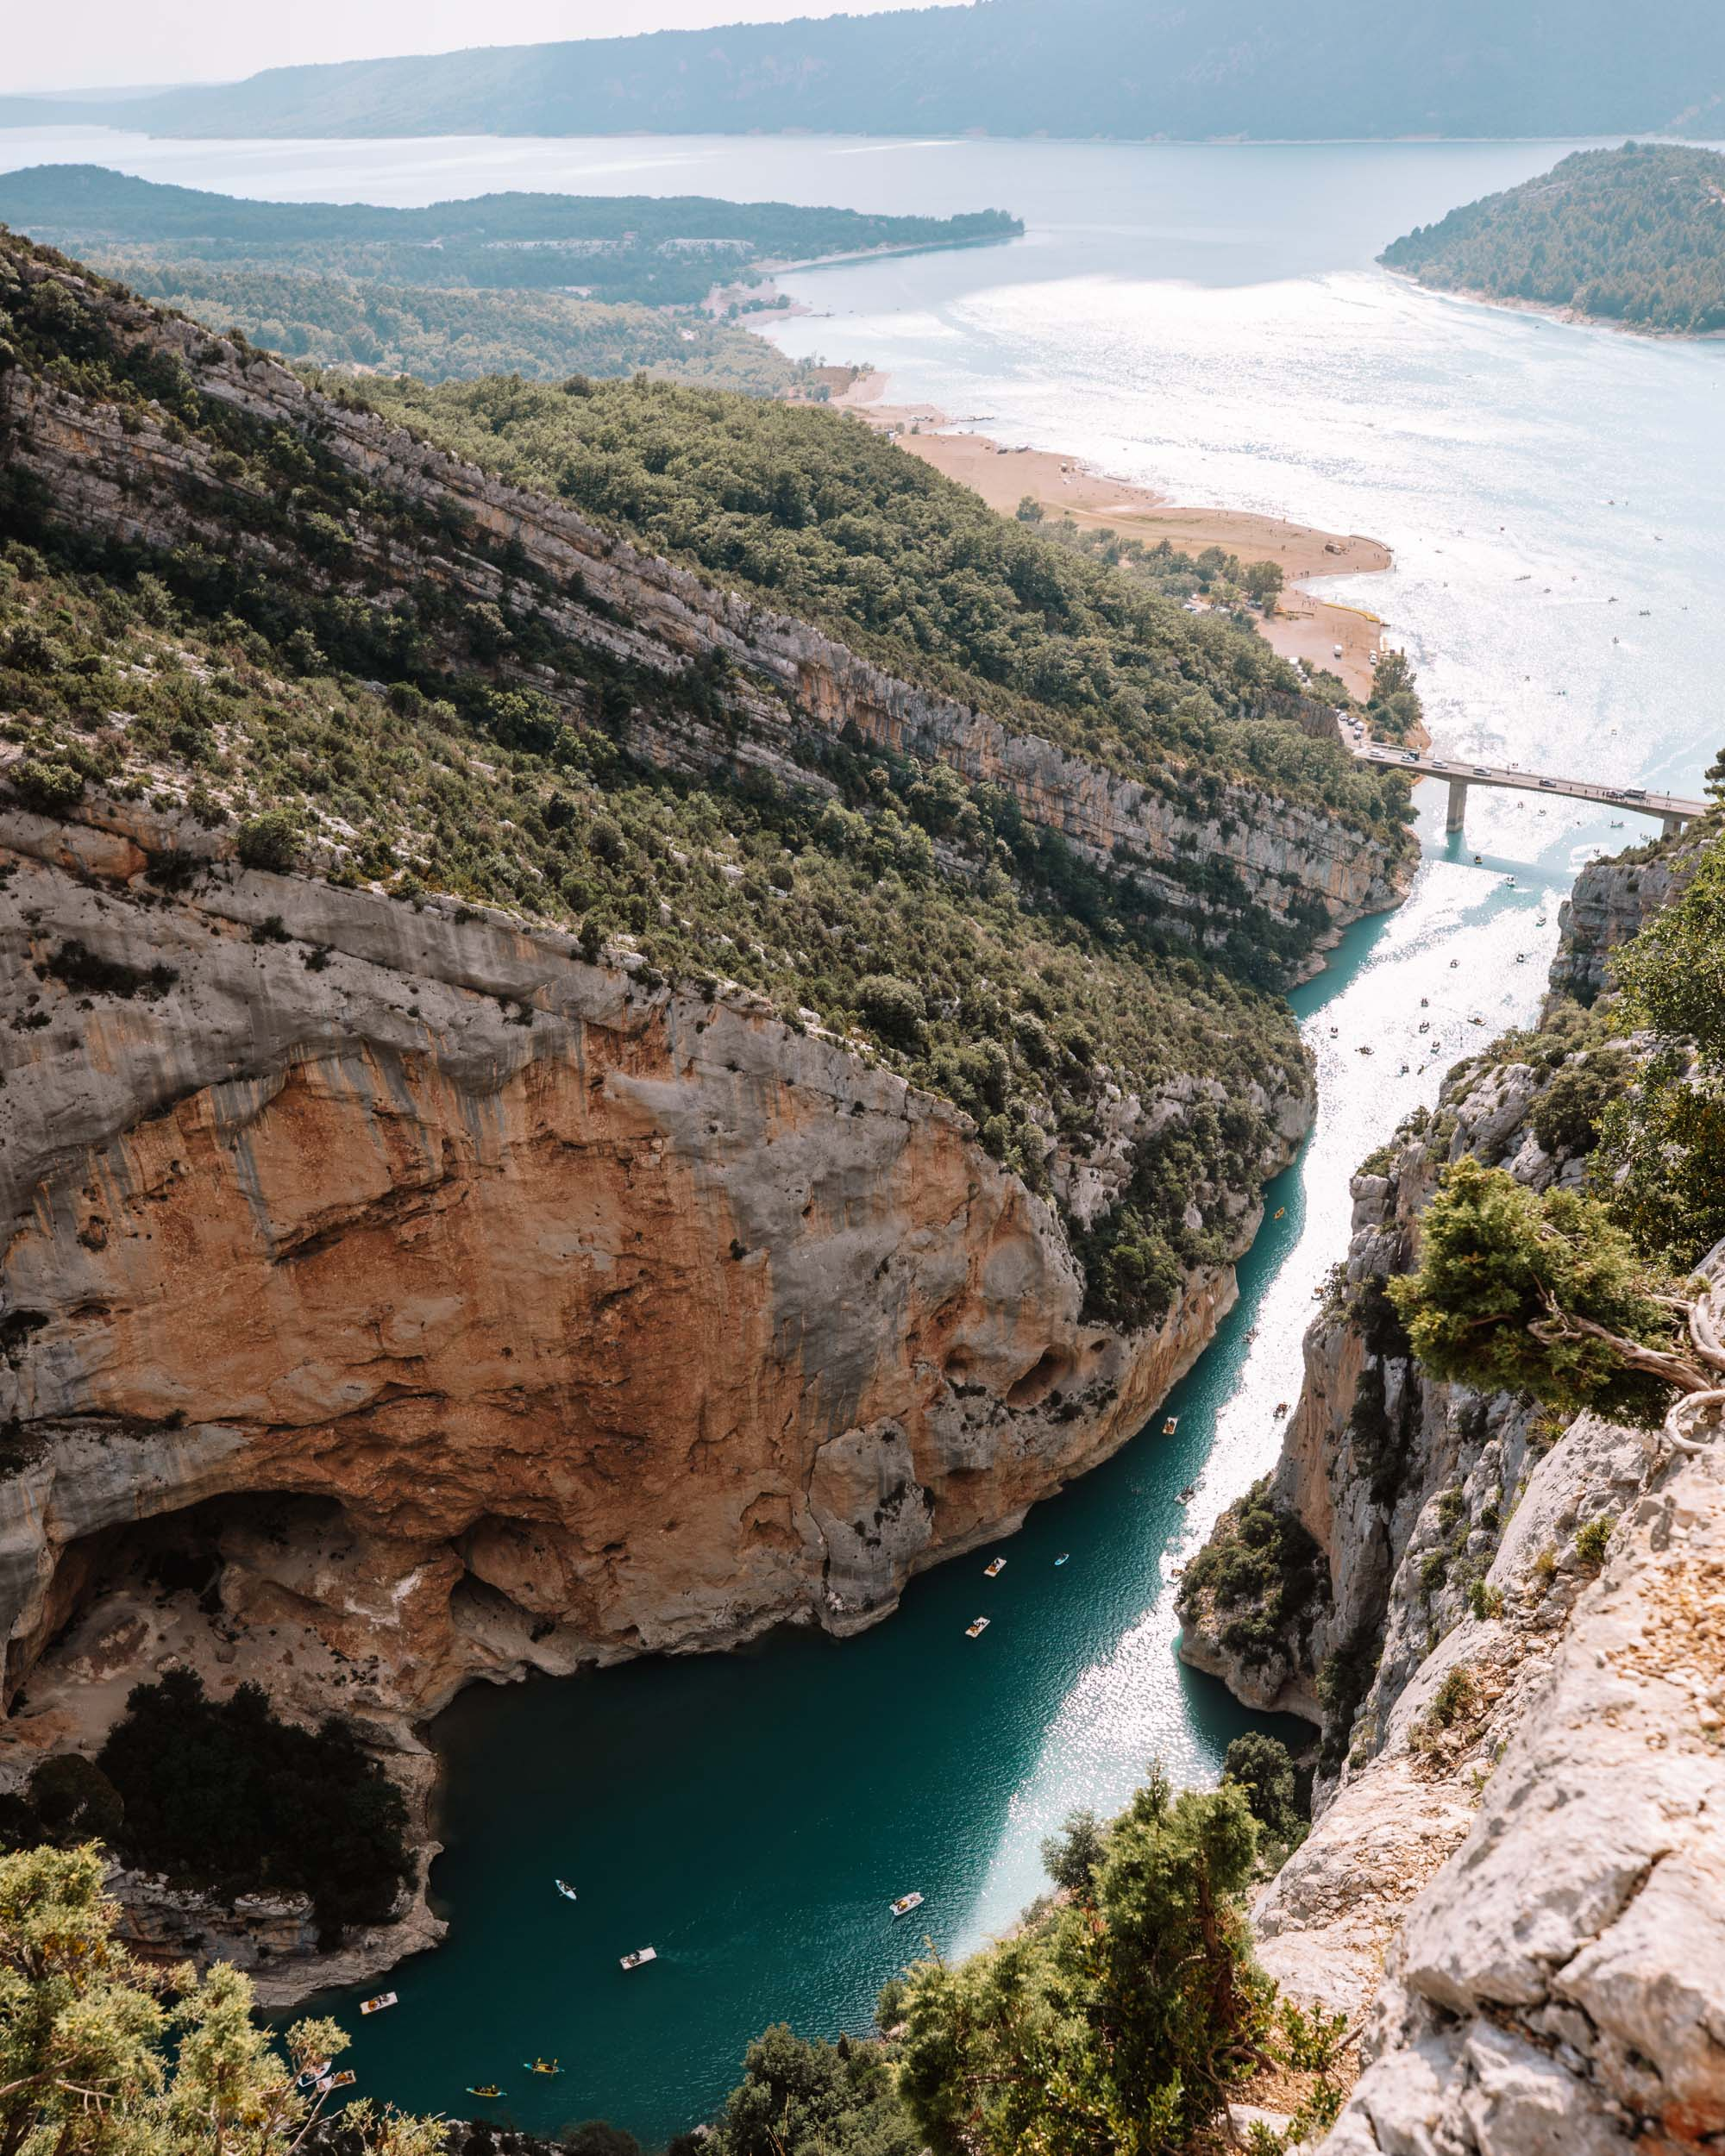 Gorges du Verdon drive in the South of France via Find Us Lost